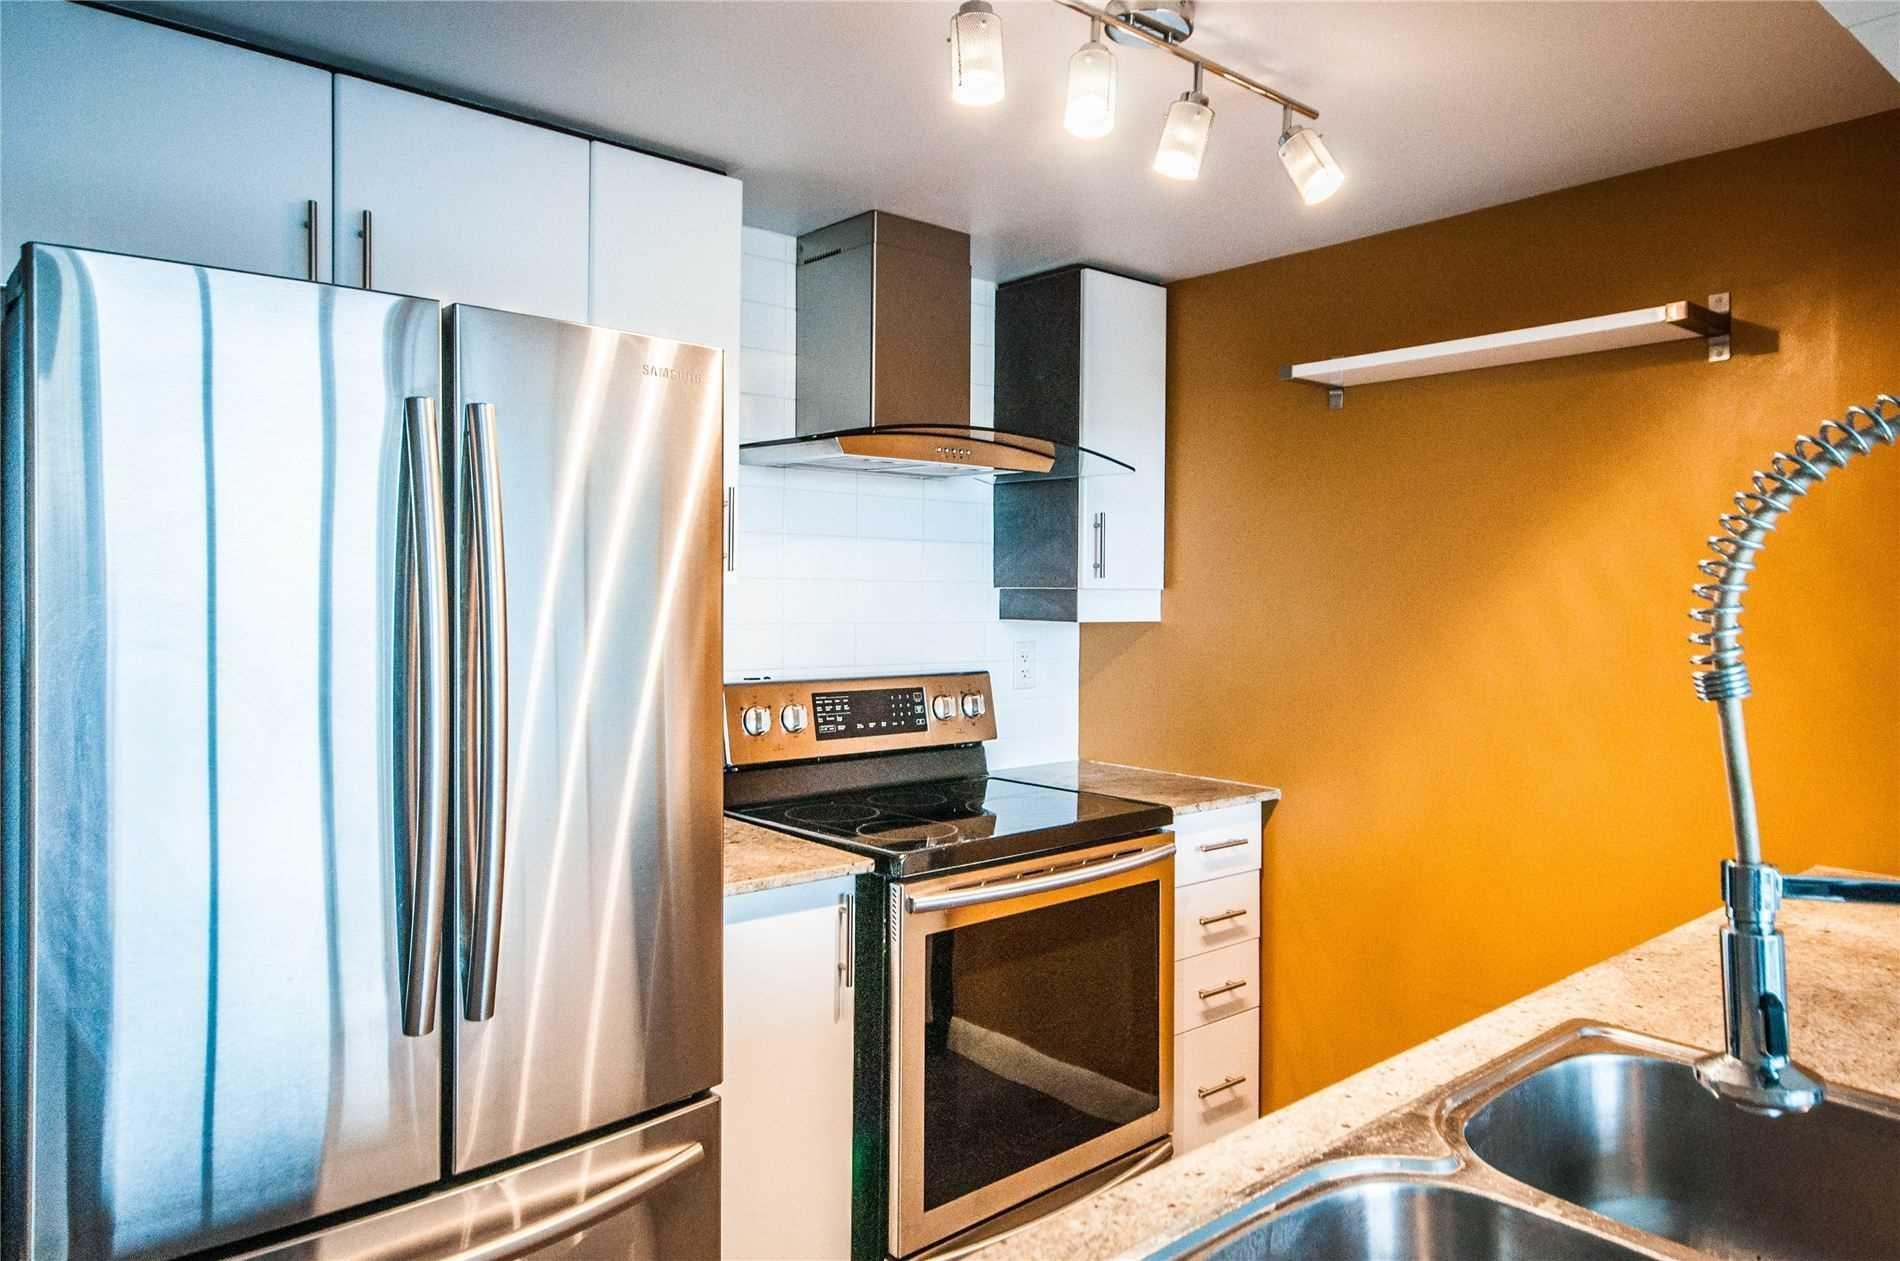 25 Town Centre Crt, unit 3101 for rent in Toronto - image #2